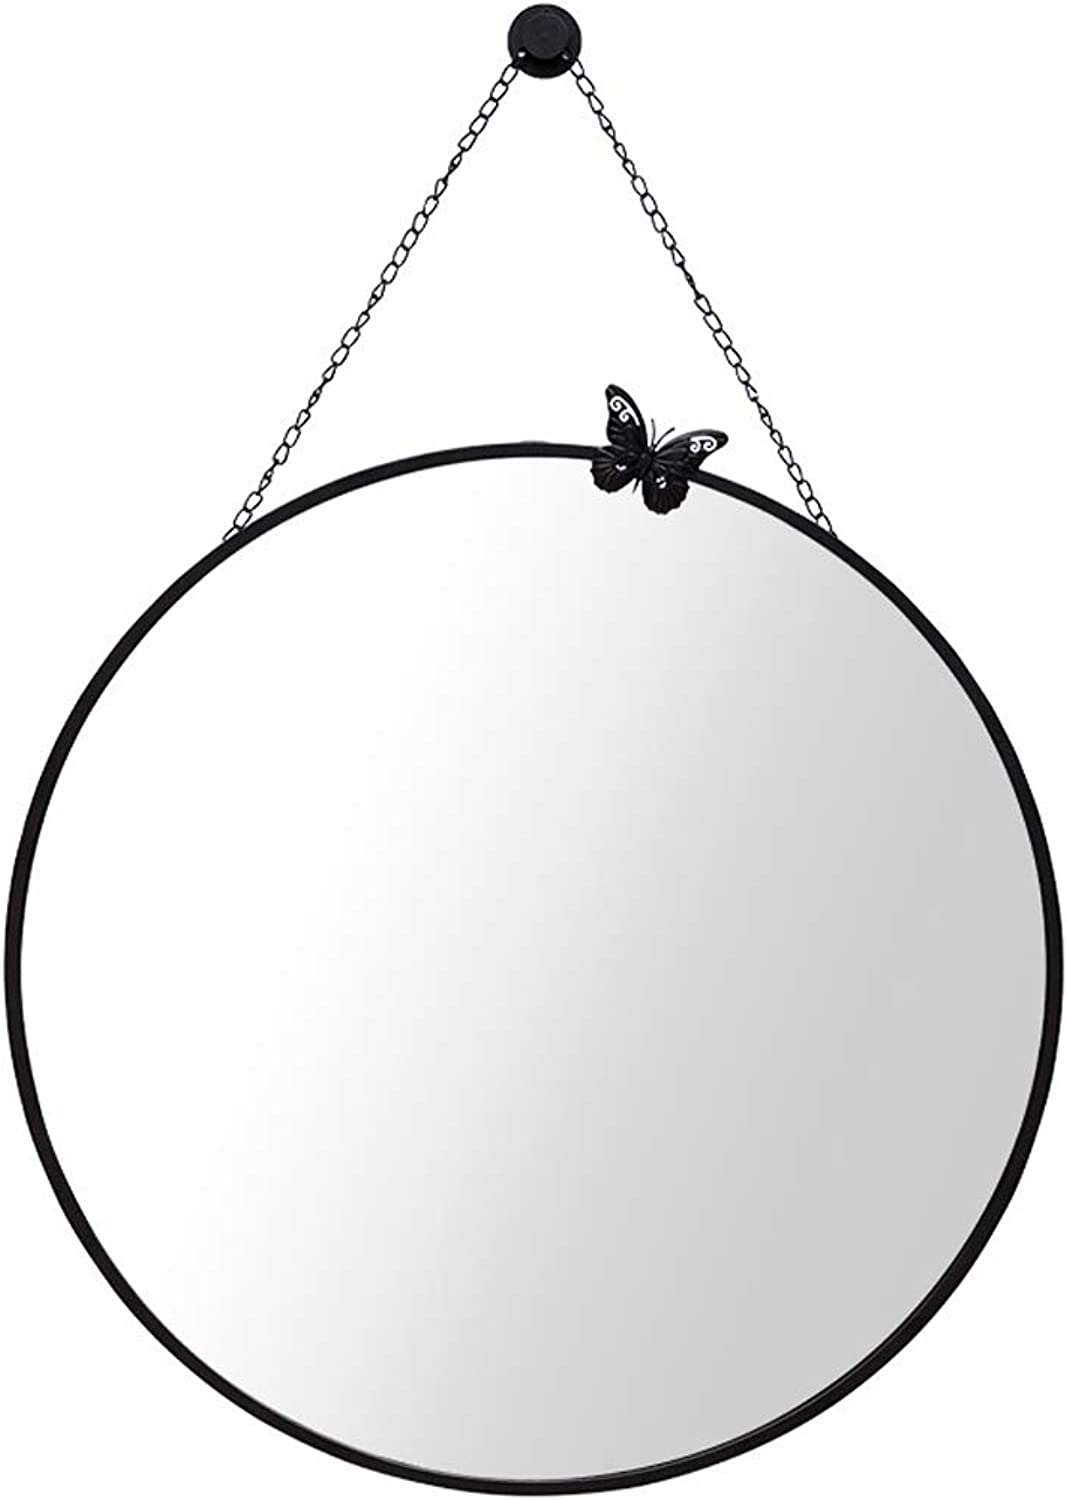 Hanging Mirror - with Chain Makeup Mirror Round Wall Mirror Bathroom Shaving Mirror Bedroom Decoration